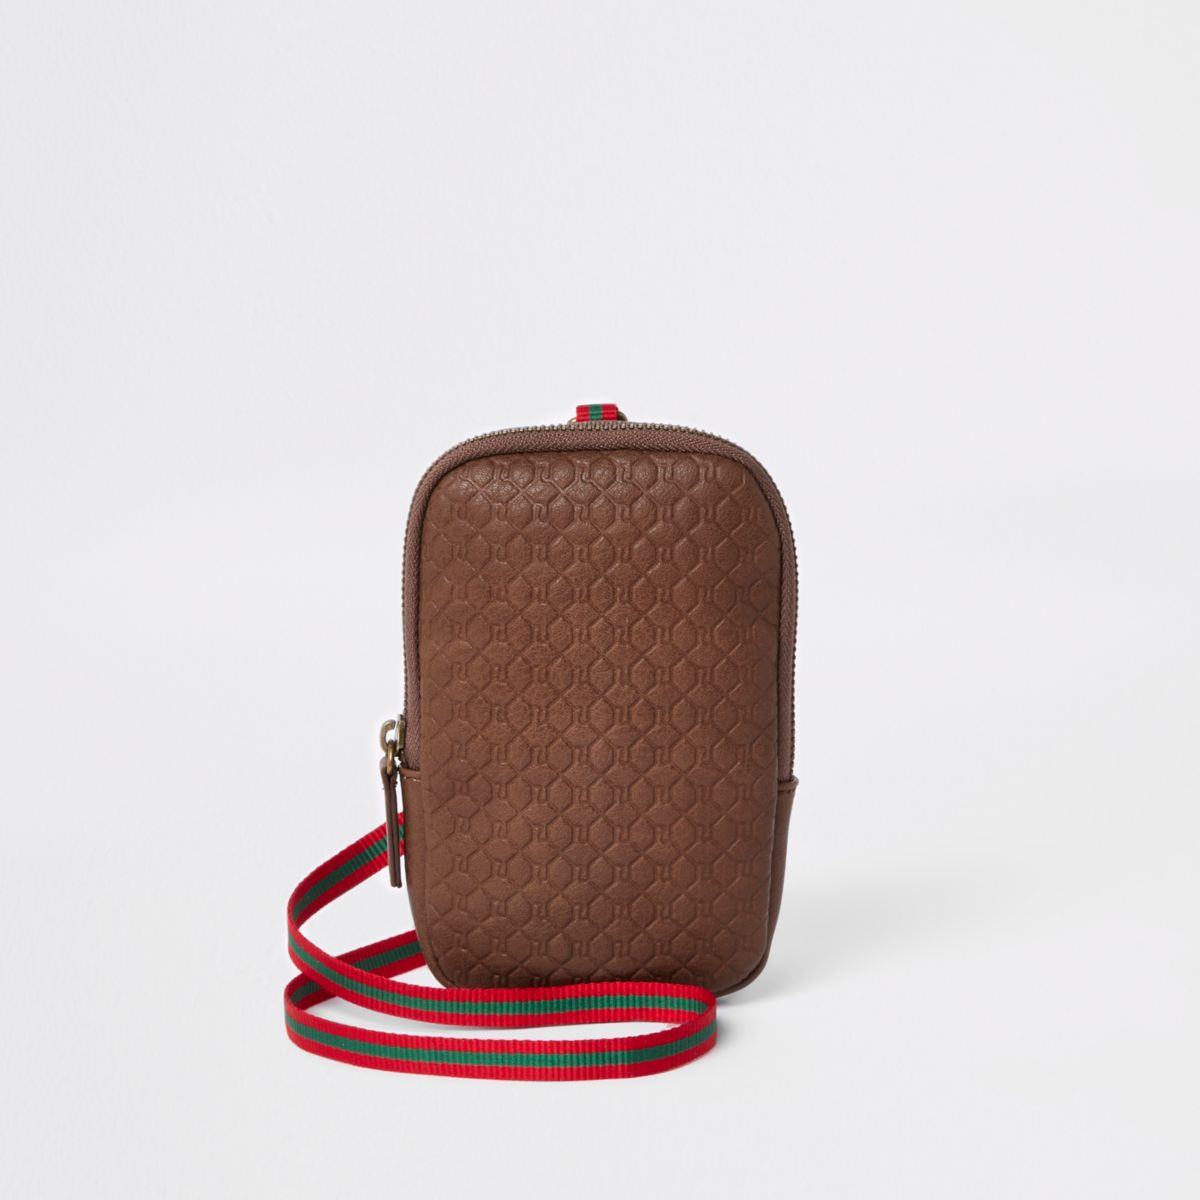 Brown RI monogram wallet